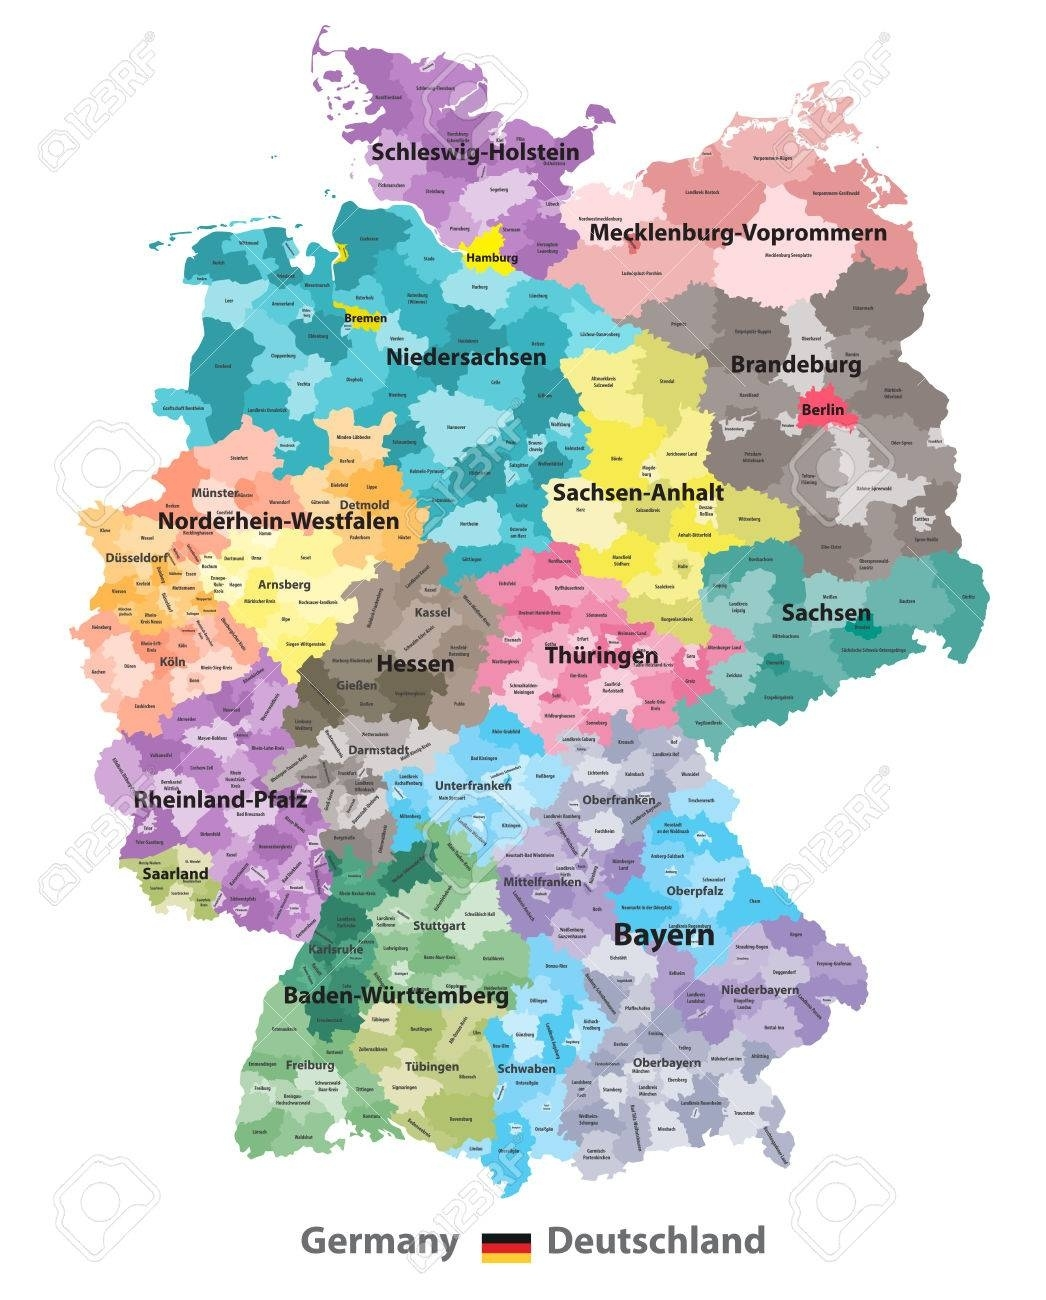 Germany Map (Coloredstates And Administrative Districts).. regarding Germany Districts Map